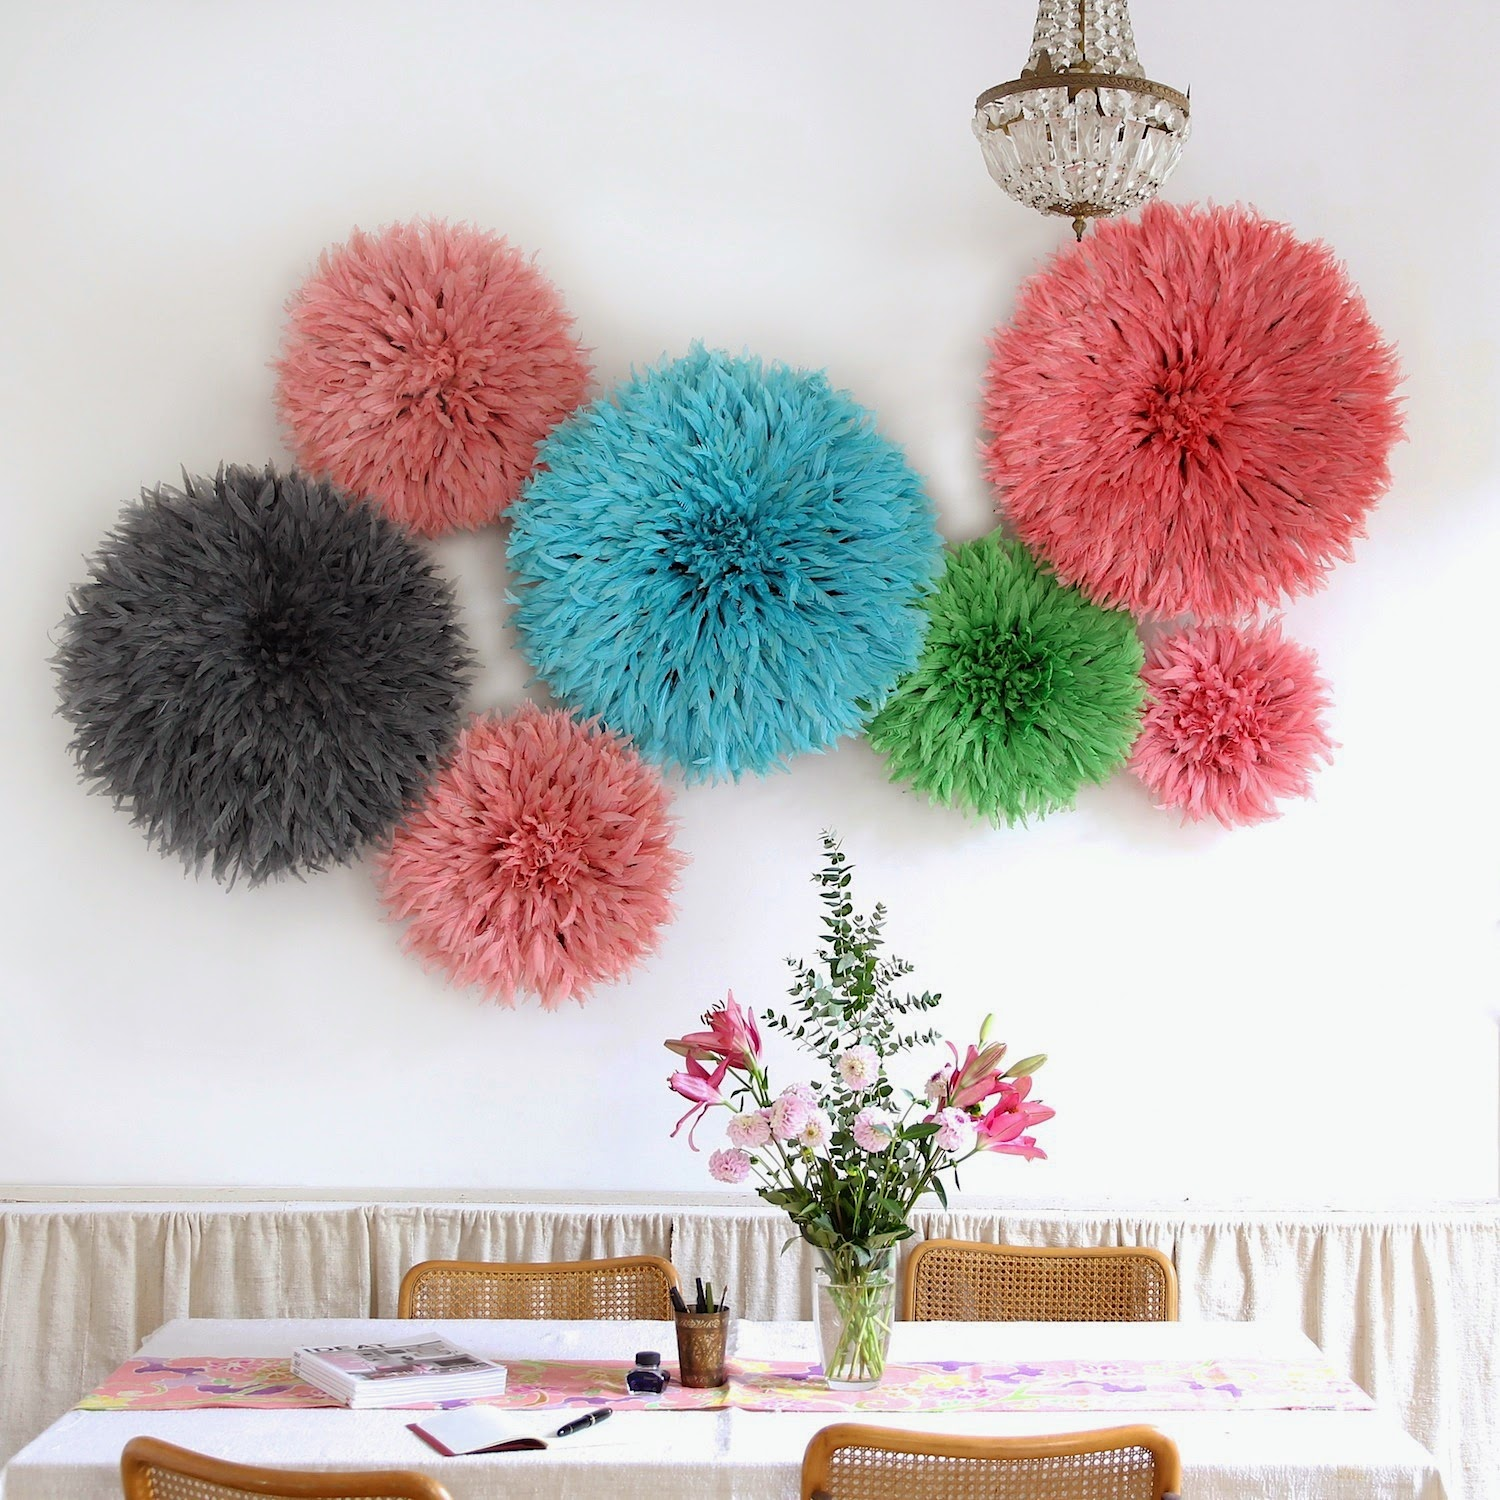 Juju Hat, Juju Hats, Wall Decor,